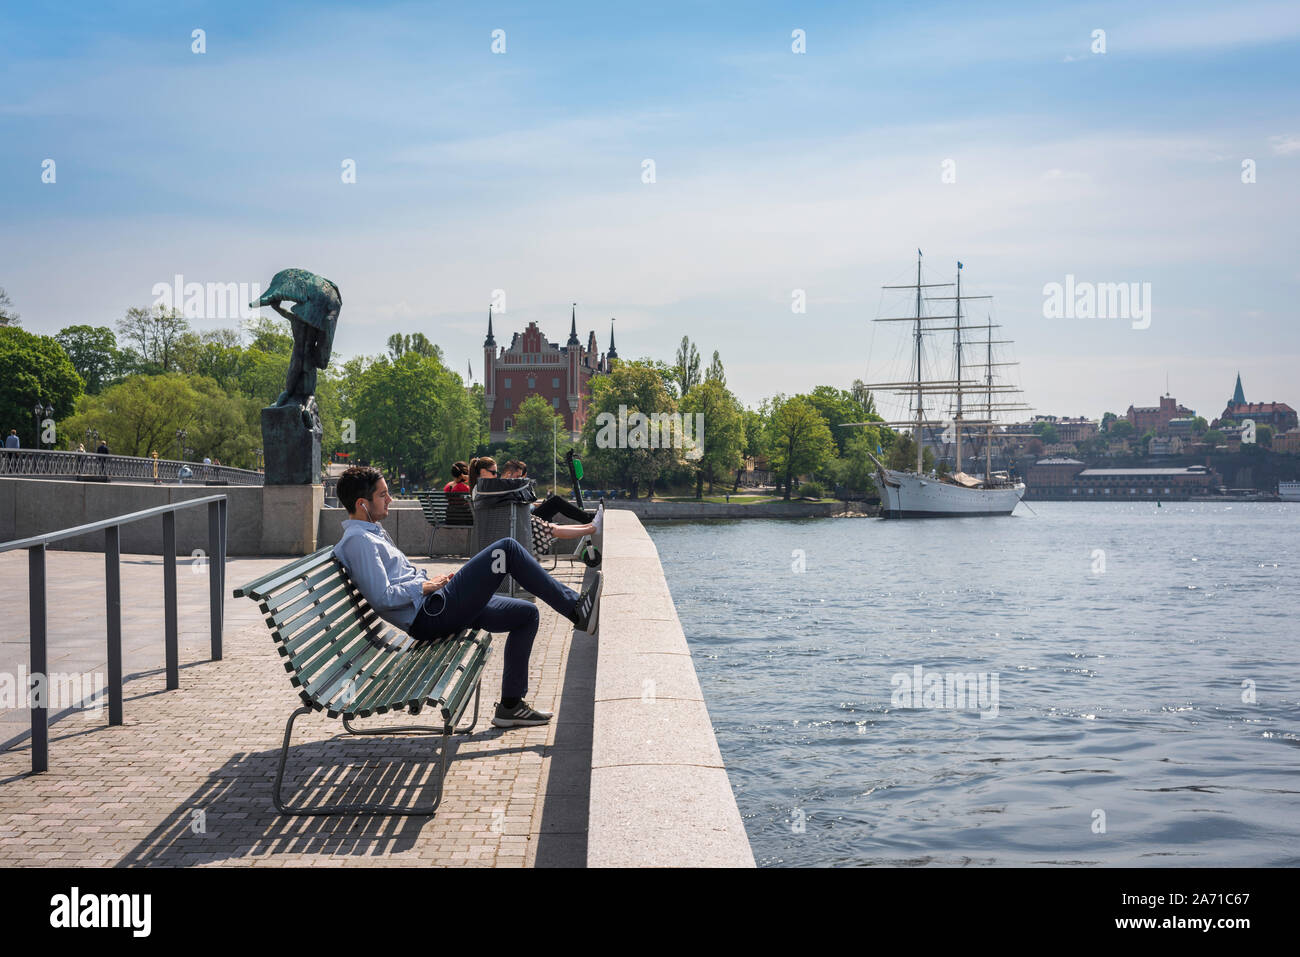 Stockholm waterfront, view in summer of a young man relaxing on a bench along the Blasieholmen waterfront in central Stockholm, Sweden. Stock Photo